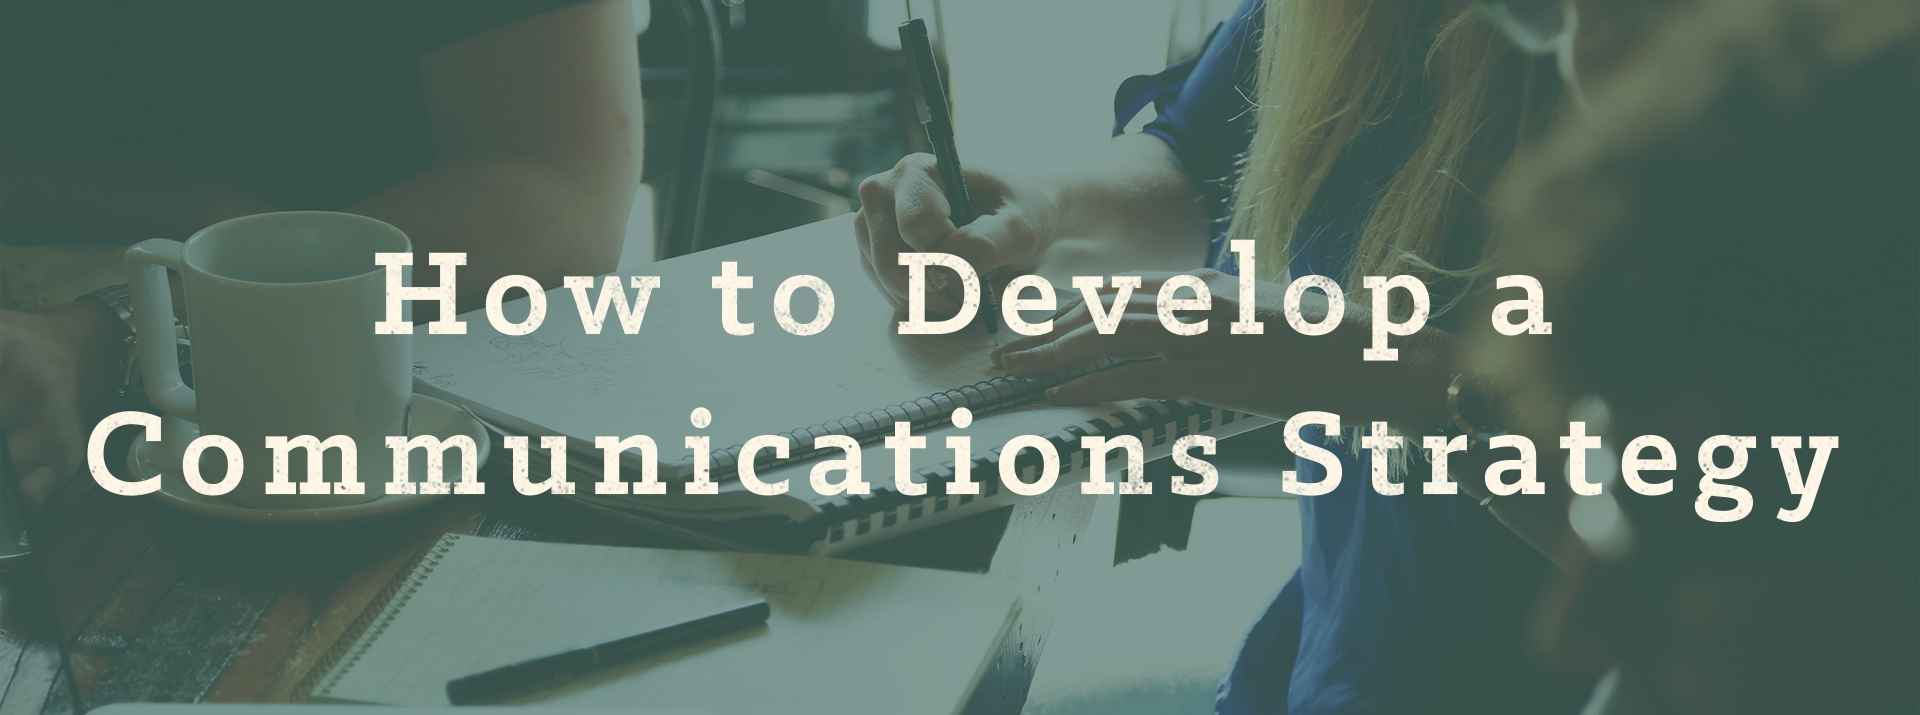 How to Develop a Communications Strategy – with 6 Words